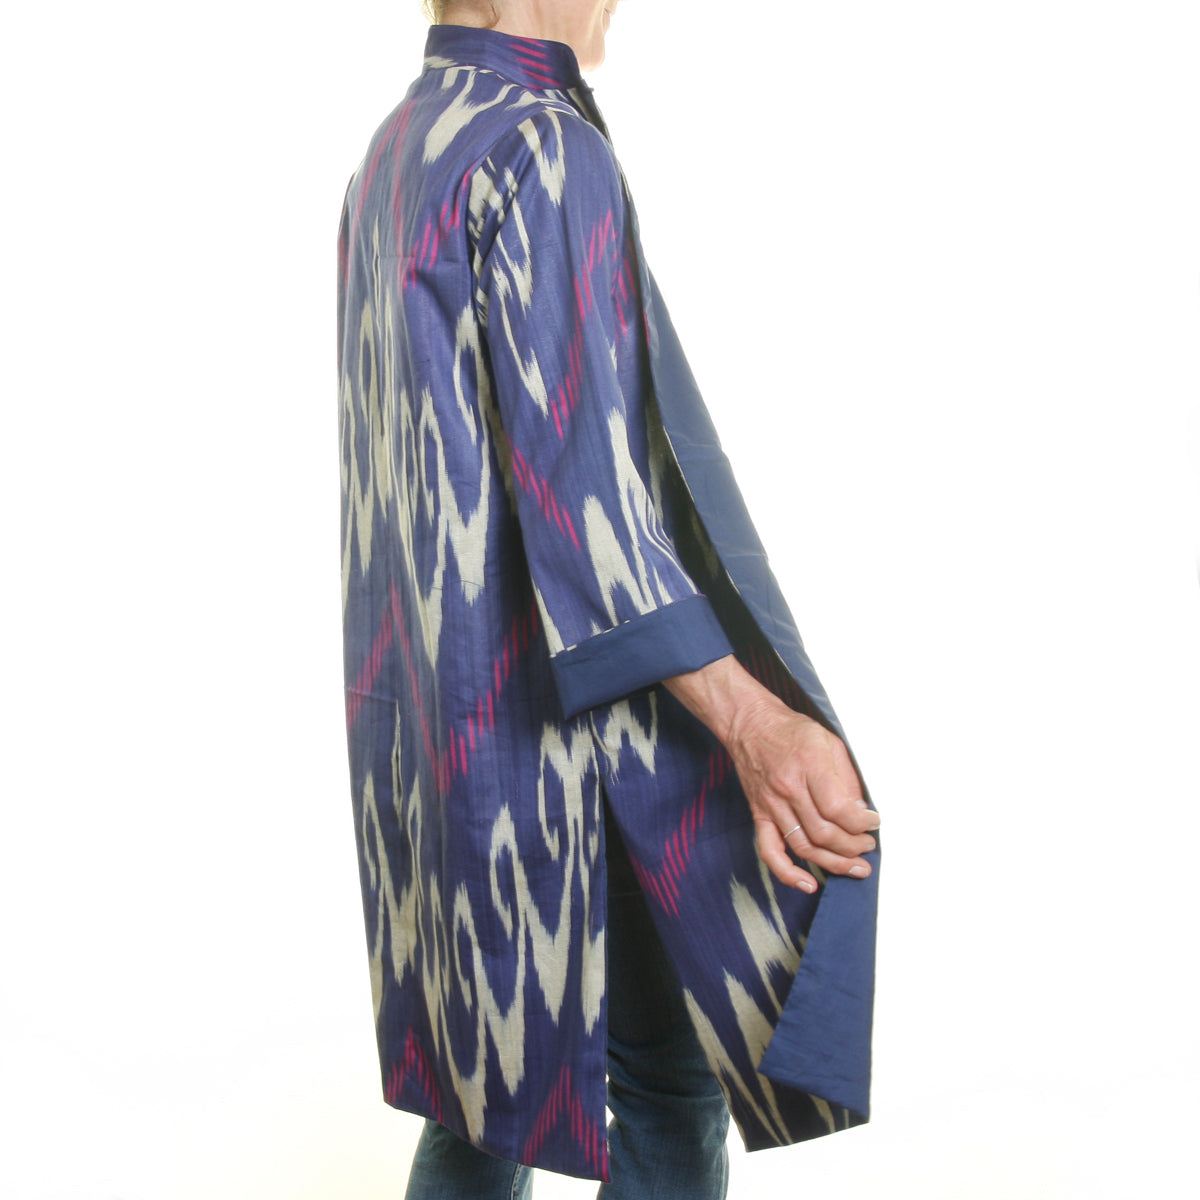 Ikat Silk and Cotton Jacket - Navy, Pink and Cream